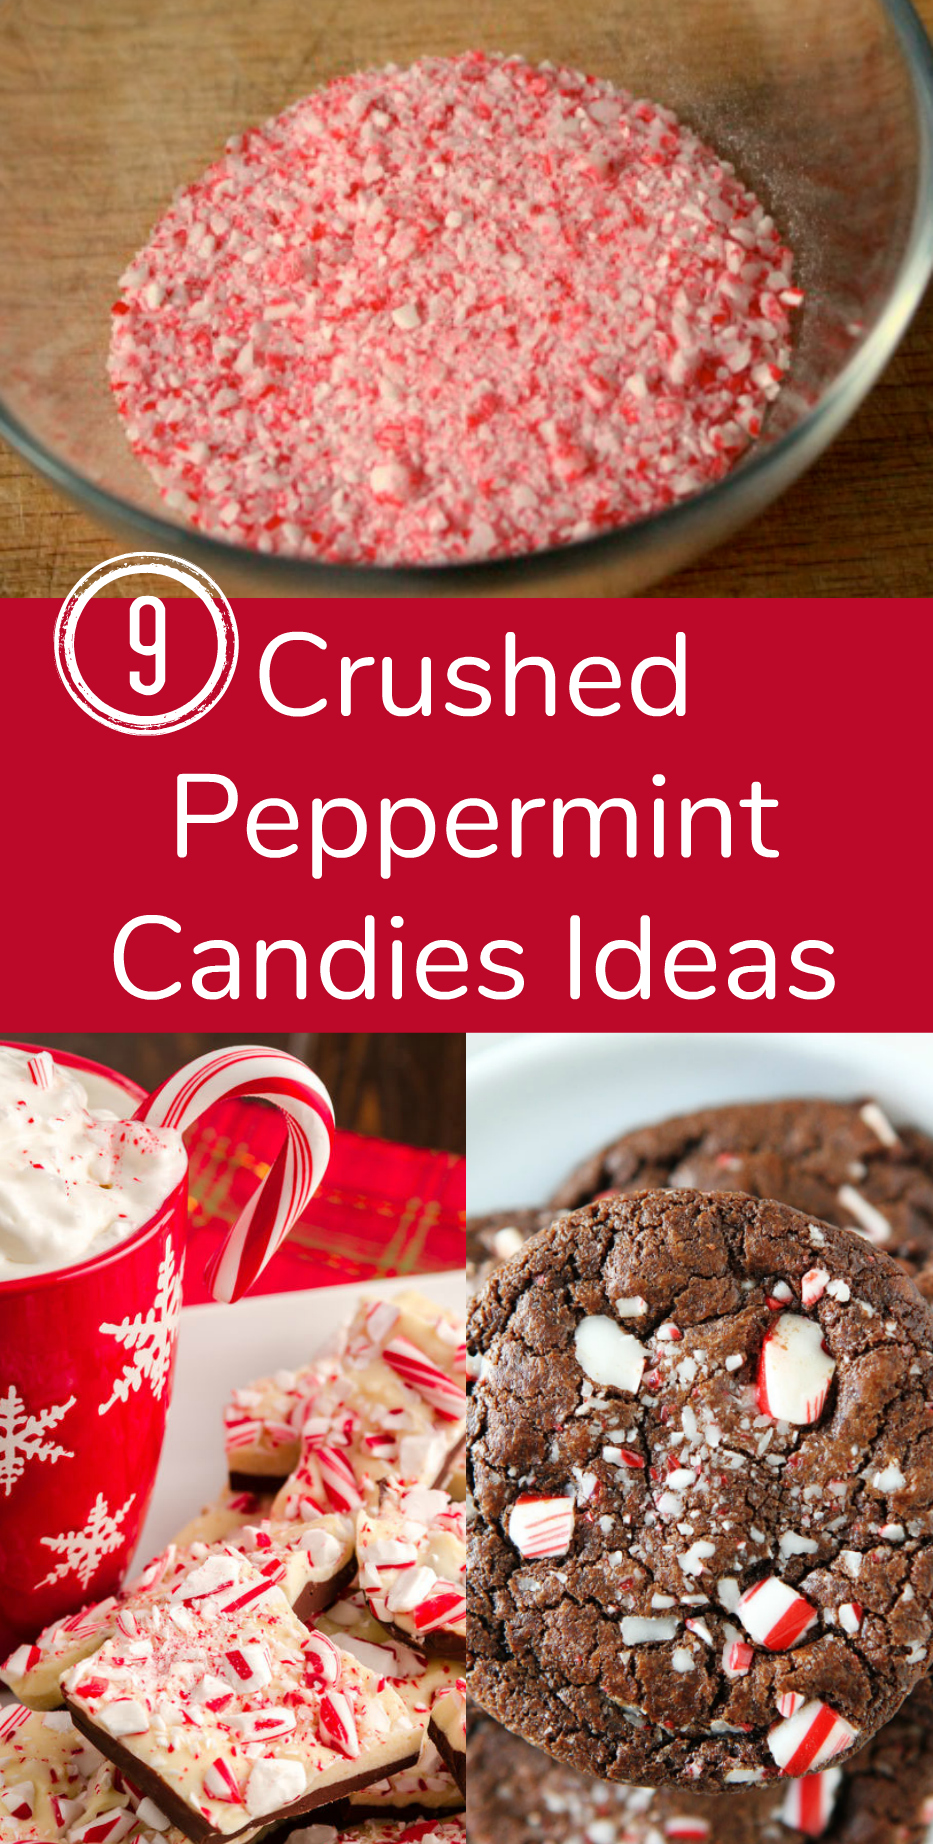 9 Crushed Peppermint Candies Ideas